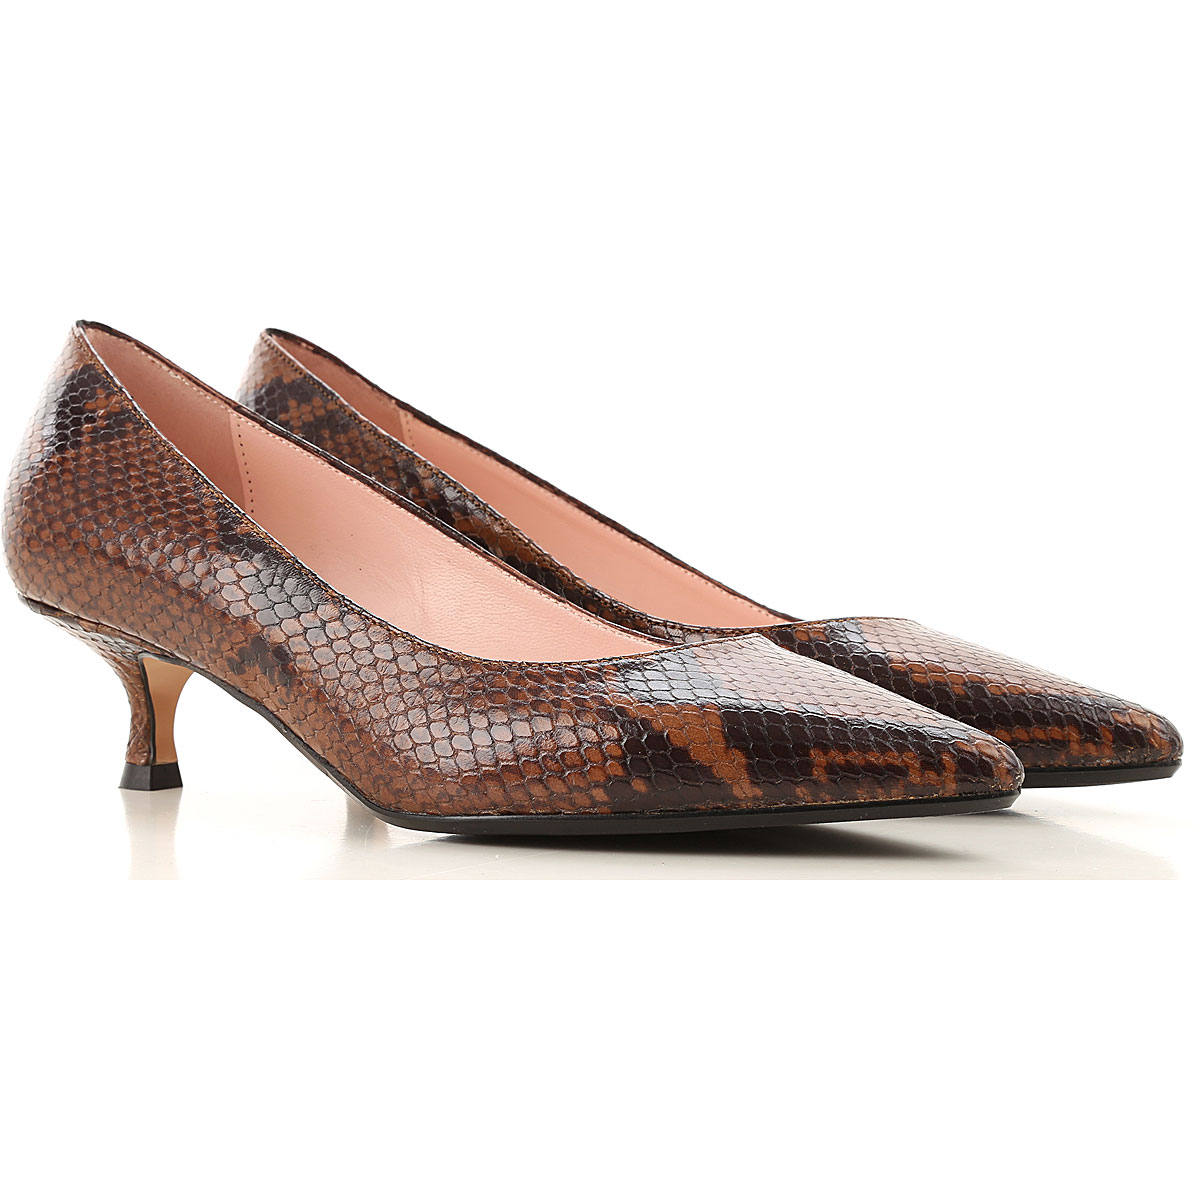 Anna F. Pumps & High Heels for Women, tabacco, Leather, 2019, 6 8